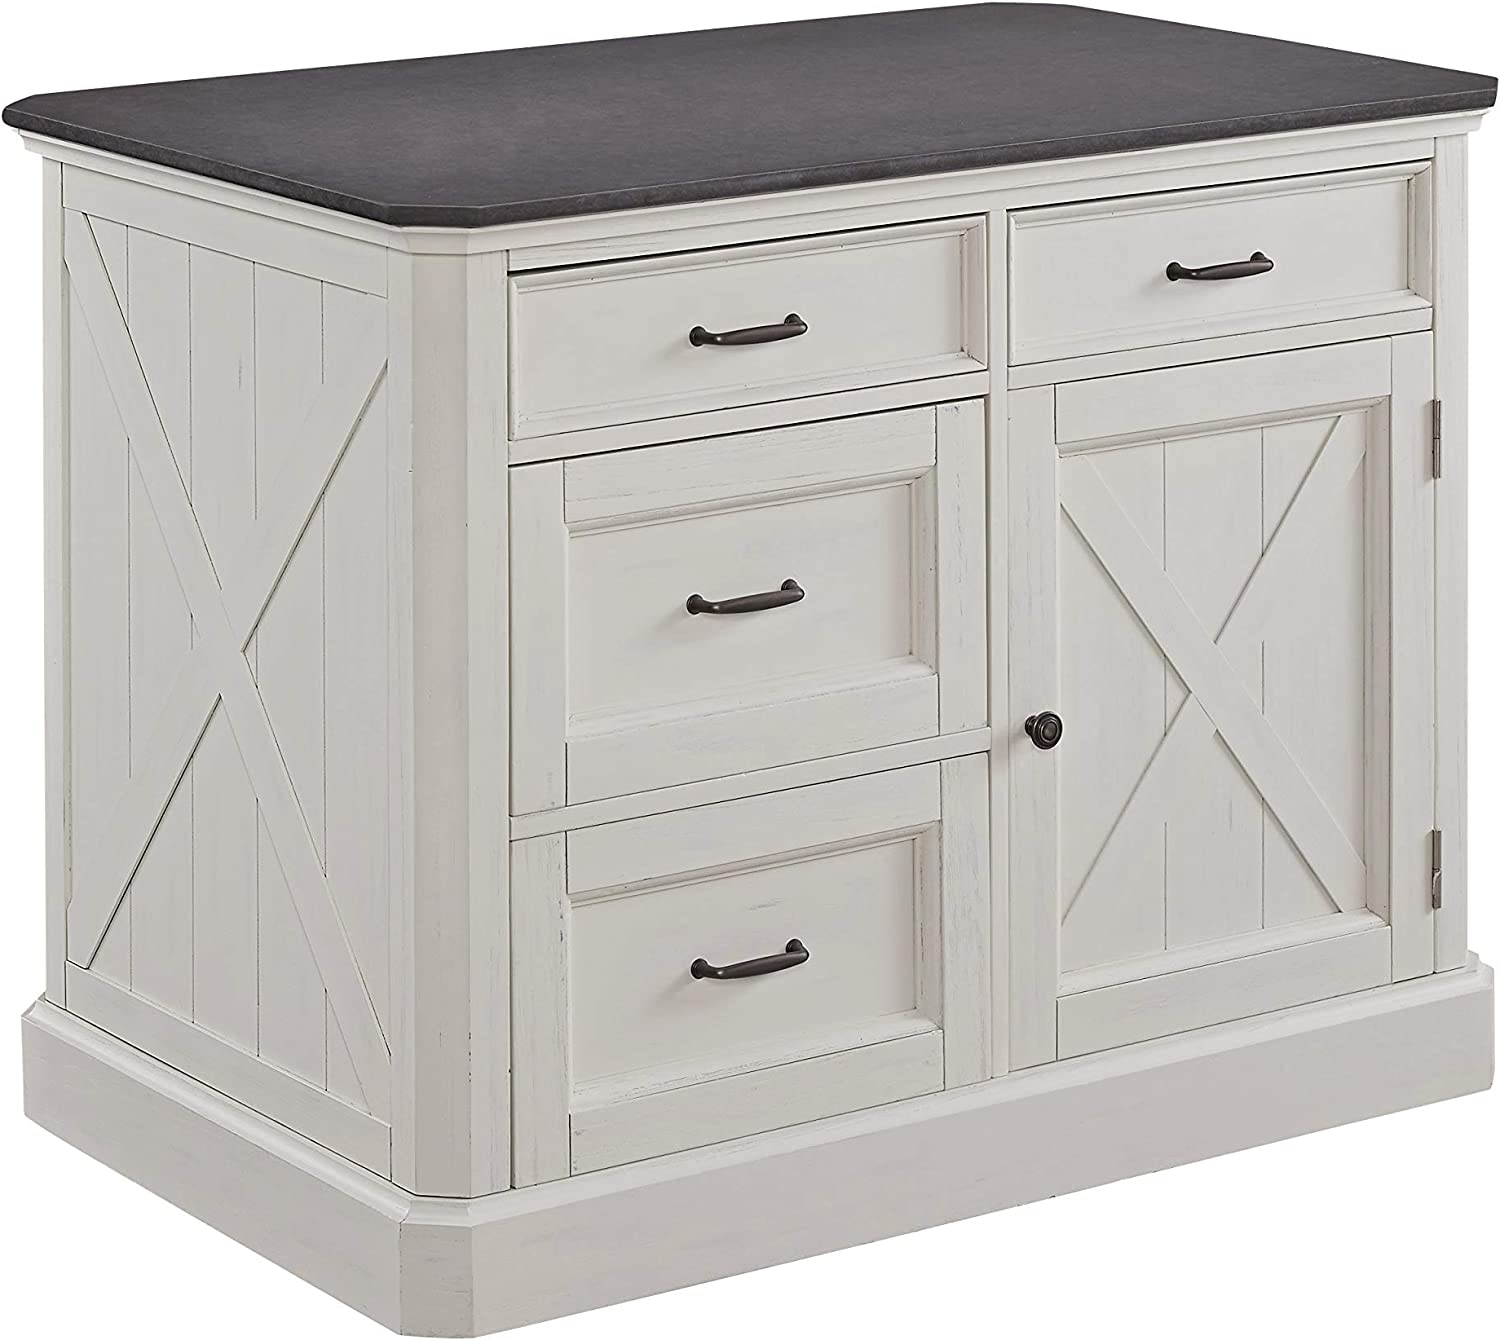 Seaside Lodge White Kitchen Island by Home Styles